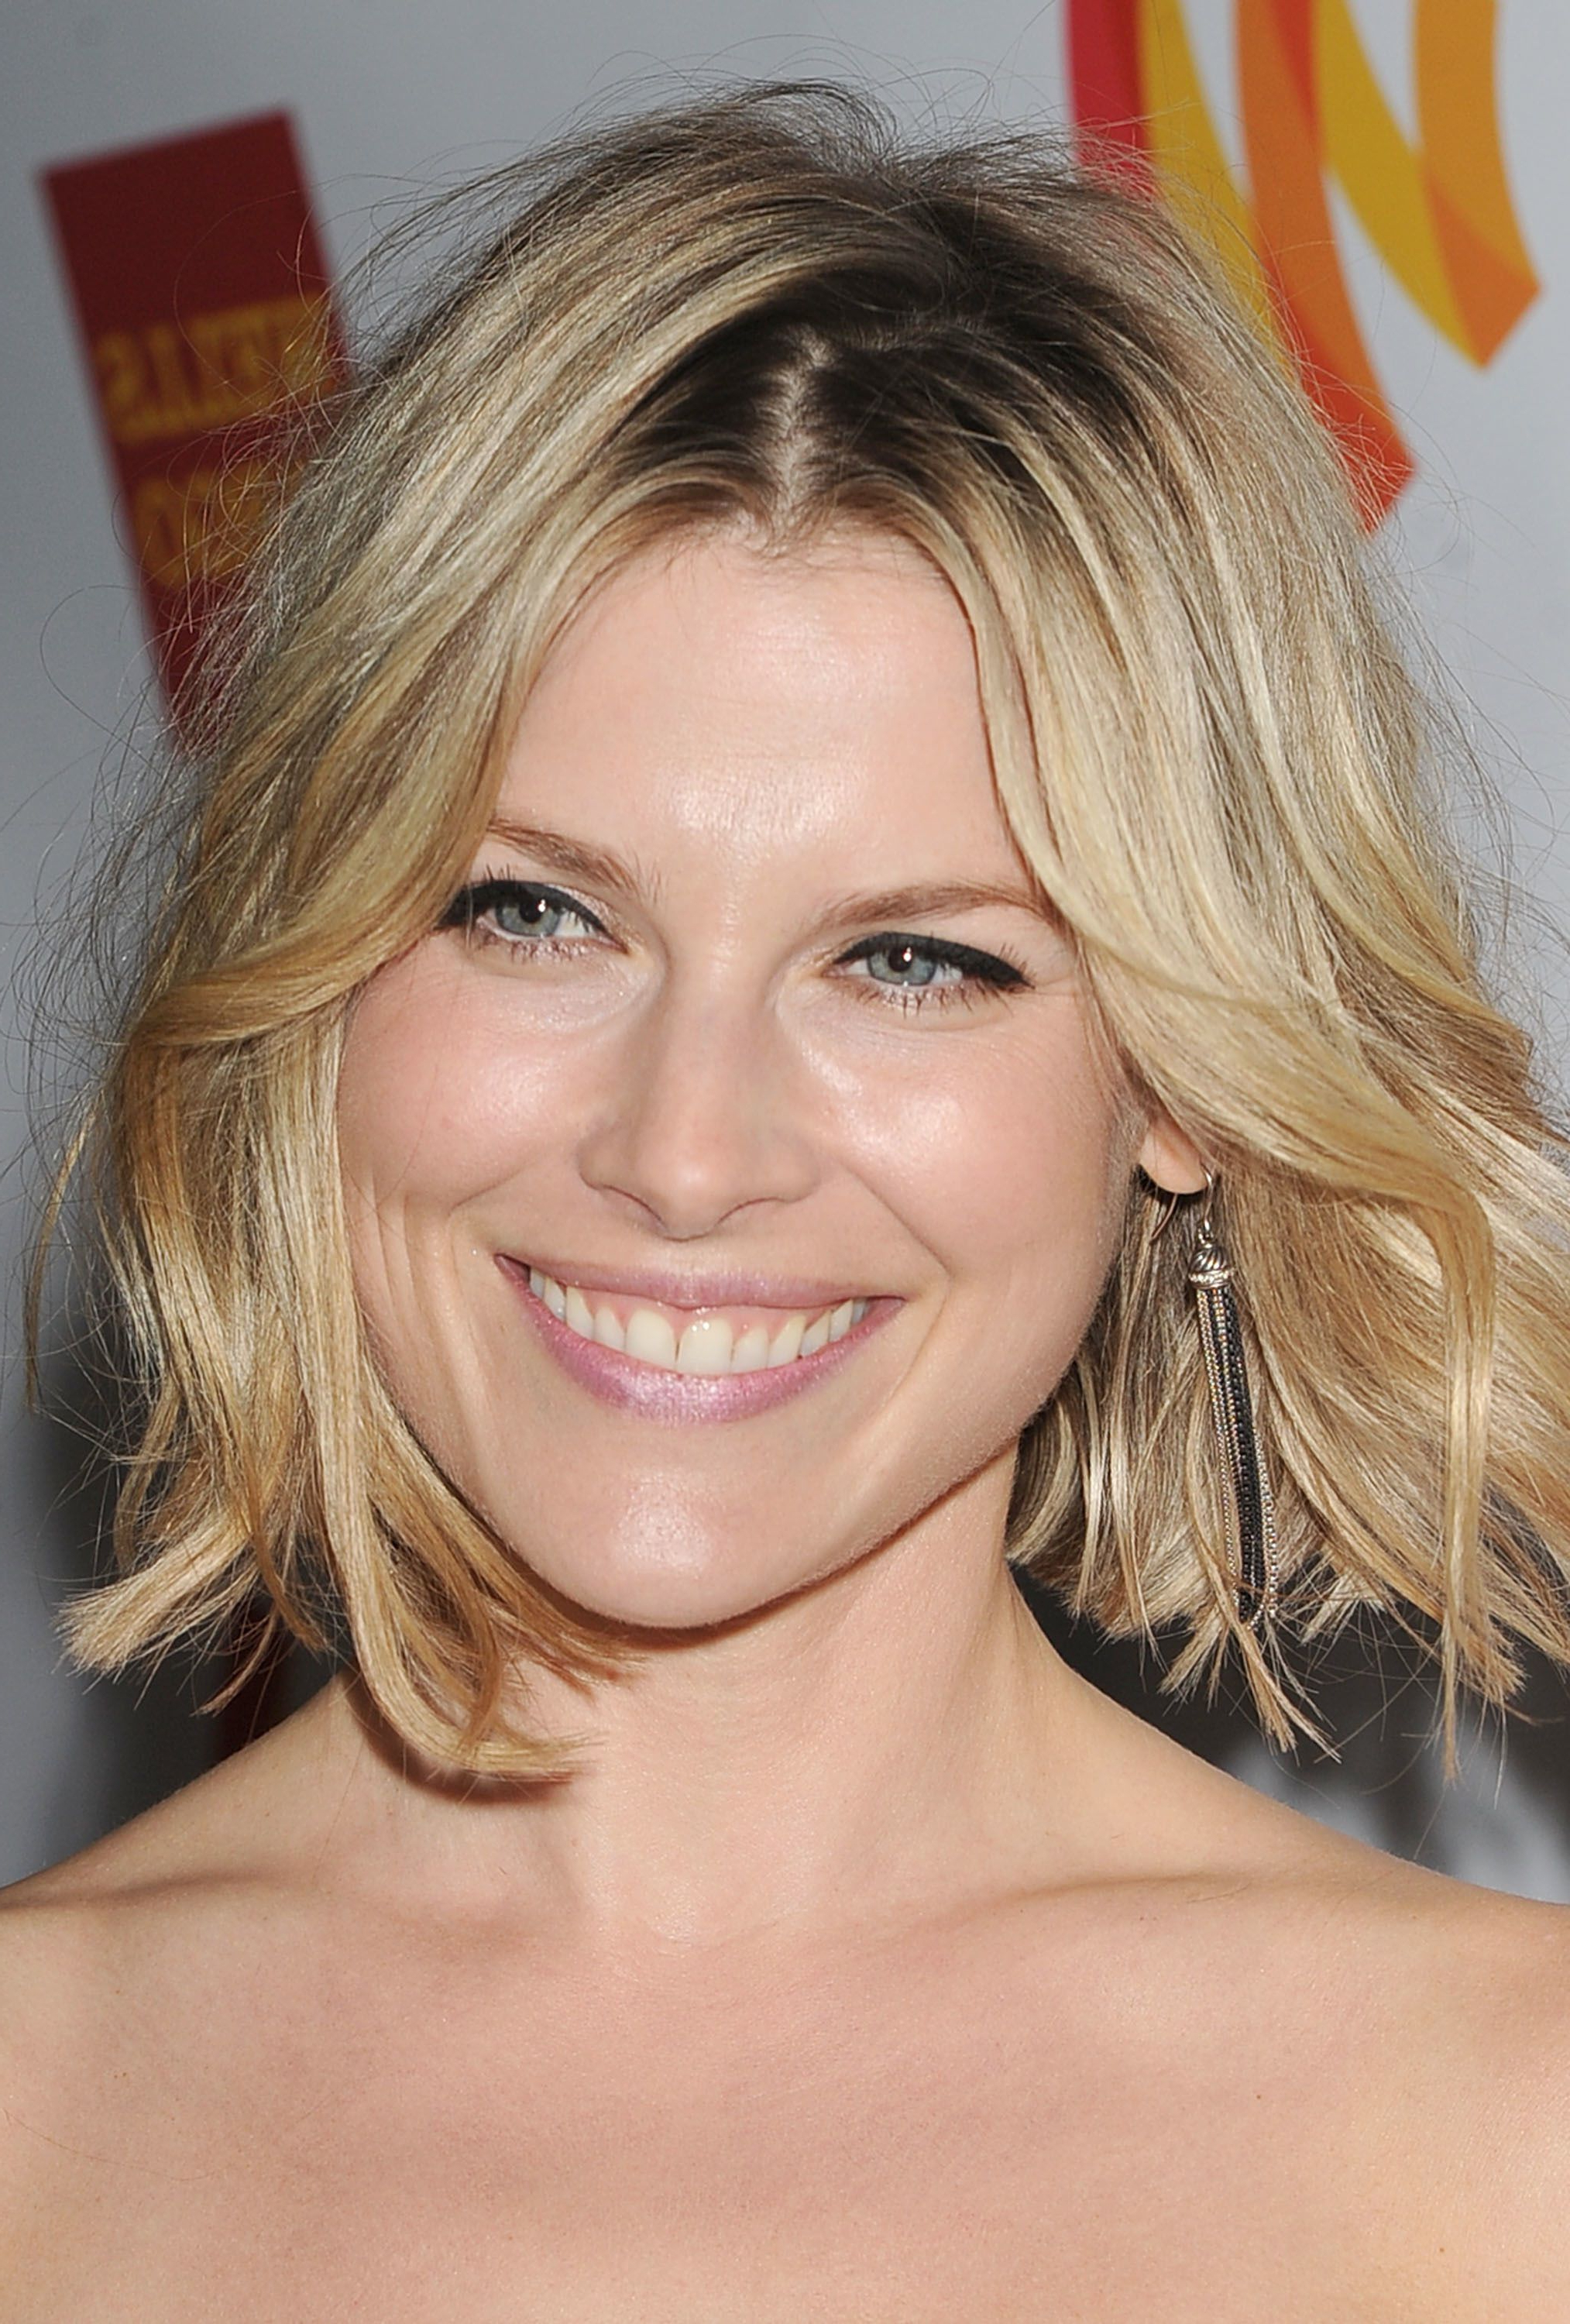 22 Inspiring Short Haircuts For Every Face Shape With Regard To Short Hairstyles For Pear Shaped Faces (View 9 of 25)